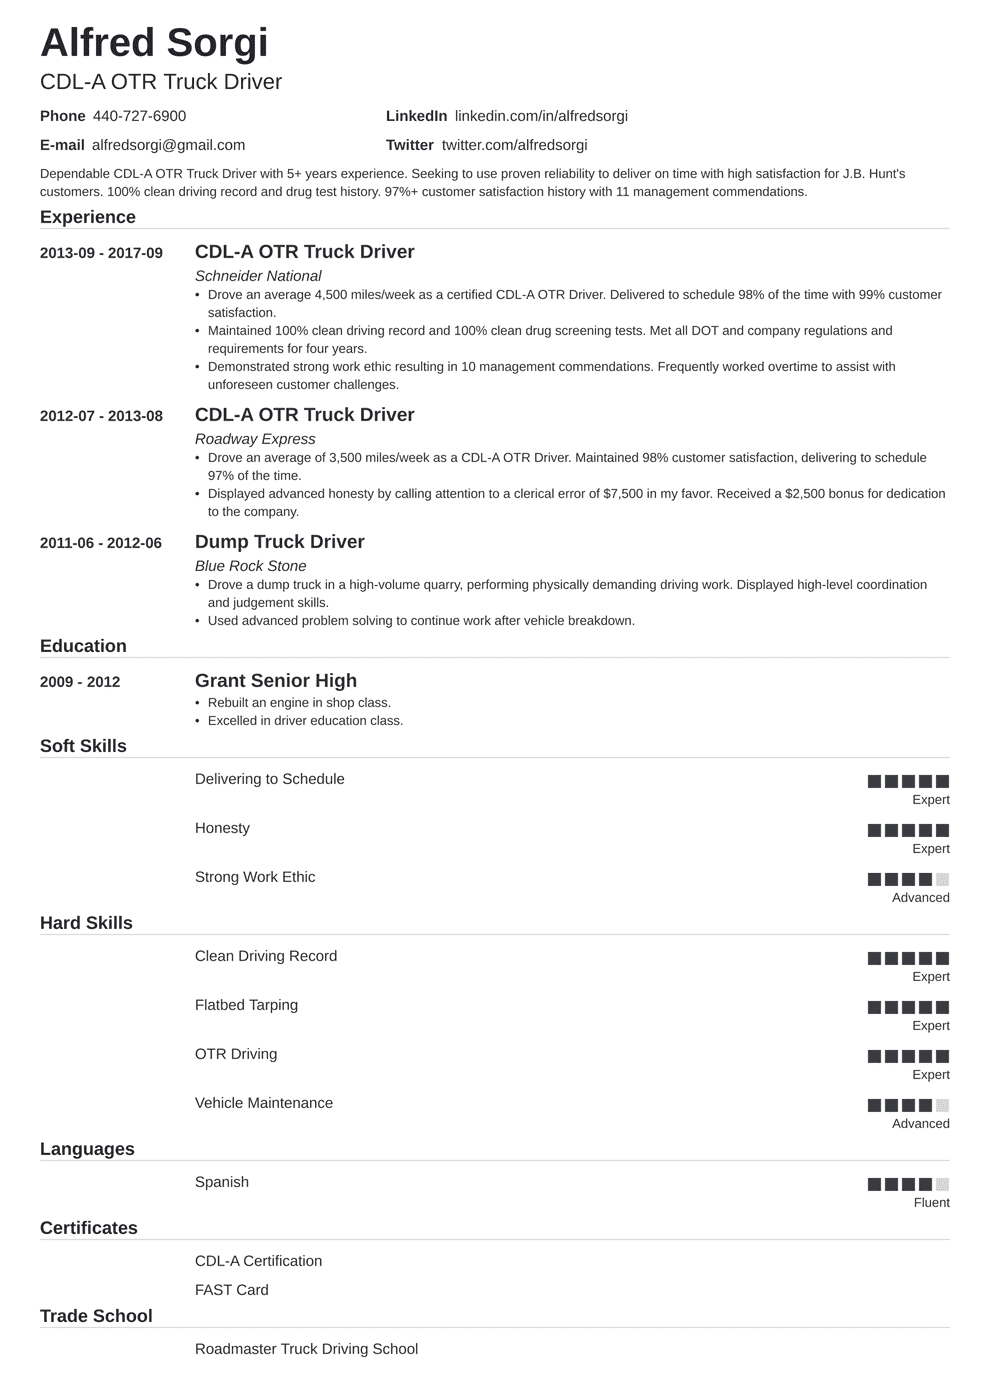 Truck Driver Resume: Sample and Complete Guide [+20 Examples]